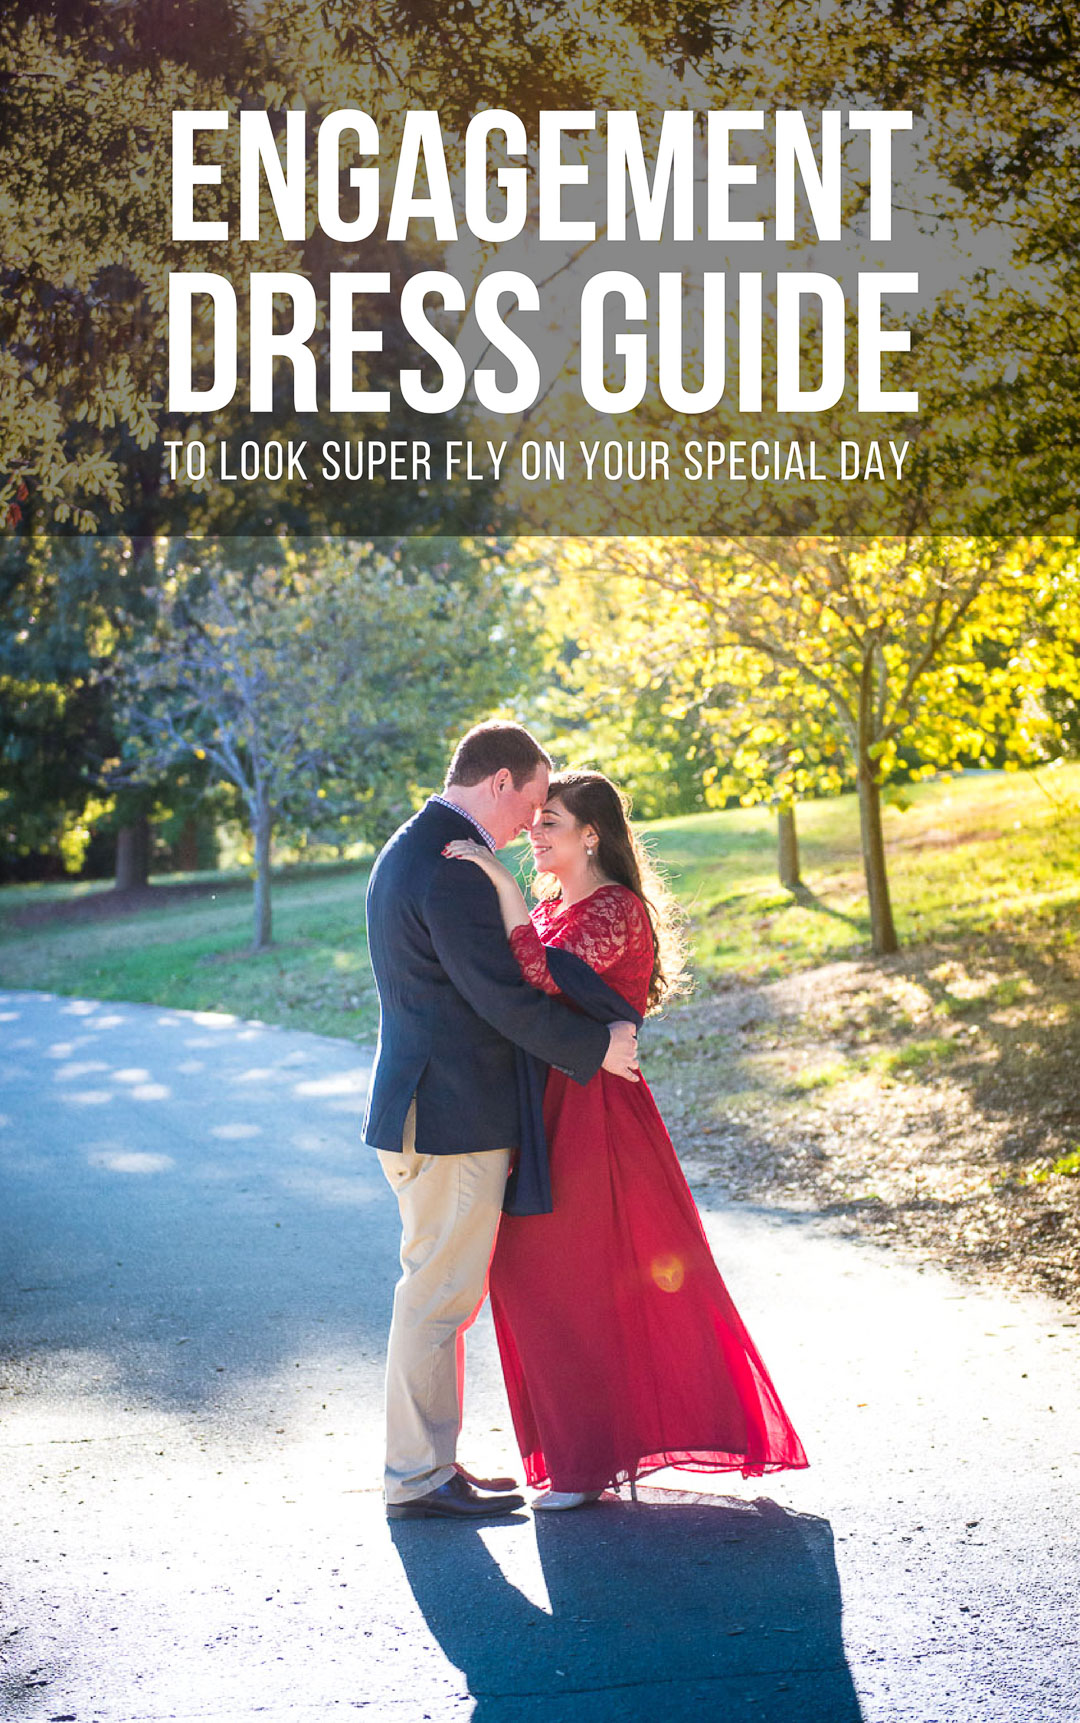 What to wear - dress guide